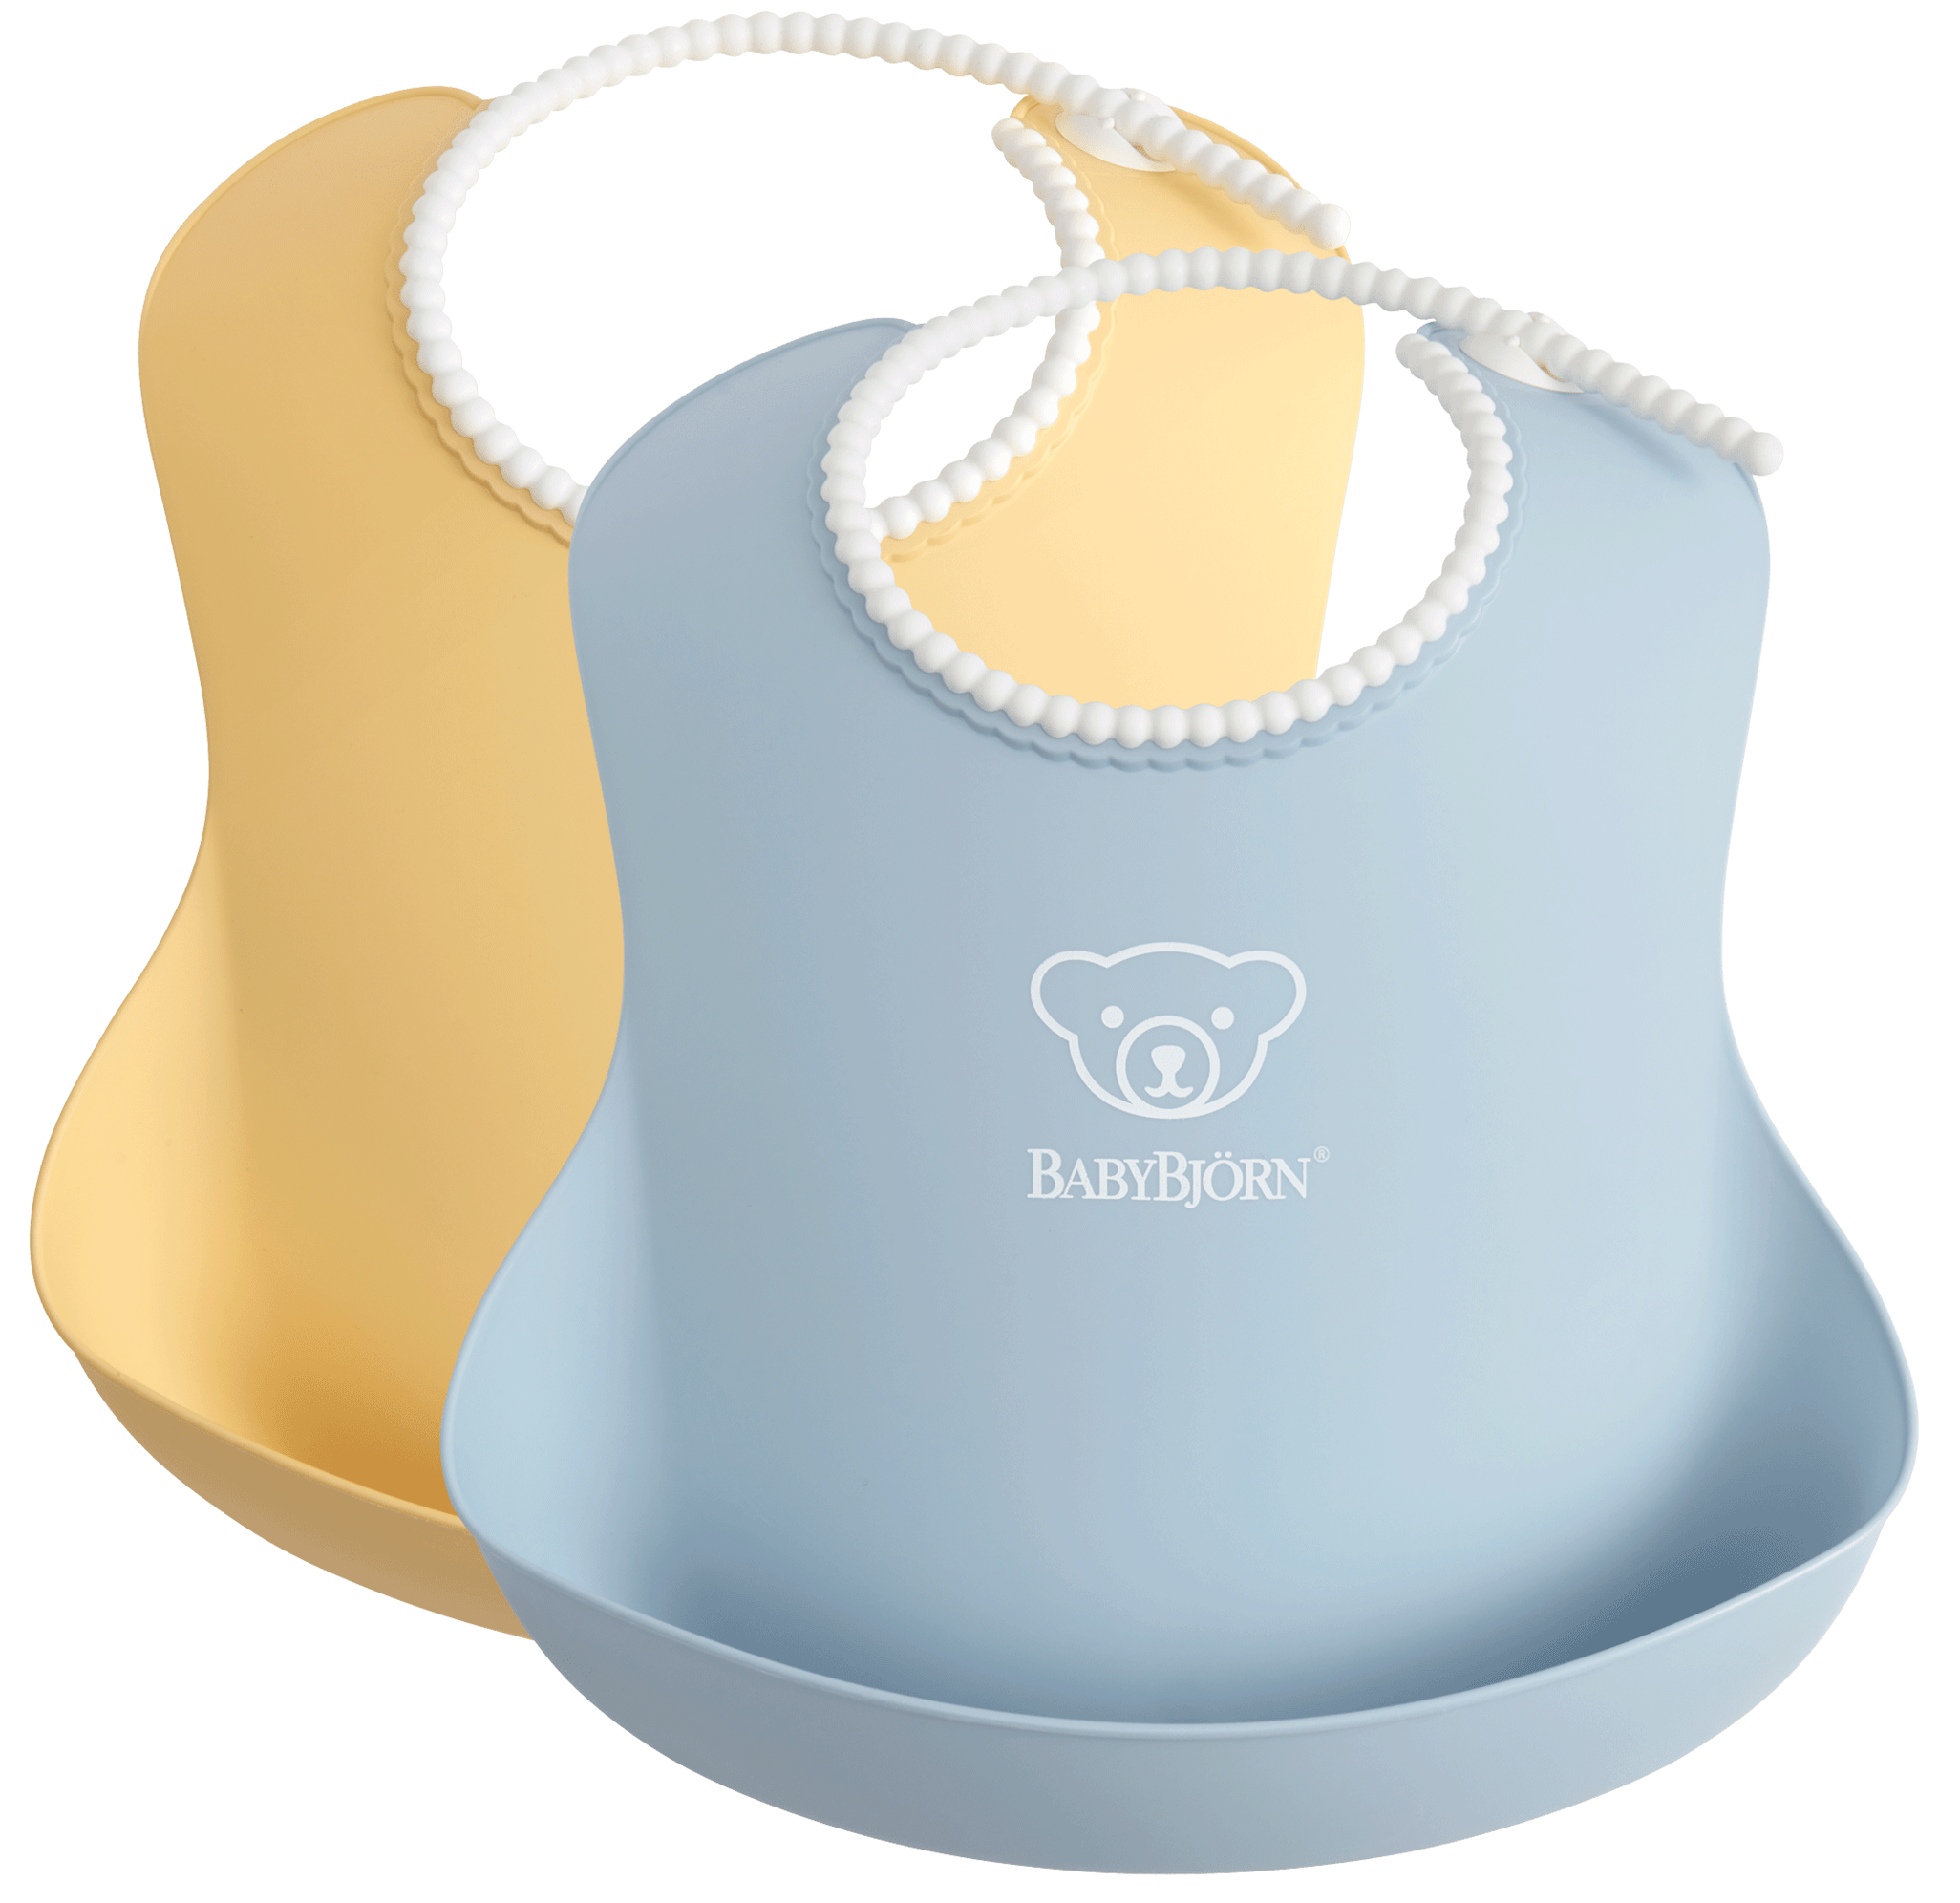 Baby Bib, 2-pack, Powder yellow / Powder blue, with deep spill pocket to catch any mess - BABYBJÖRN